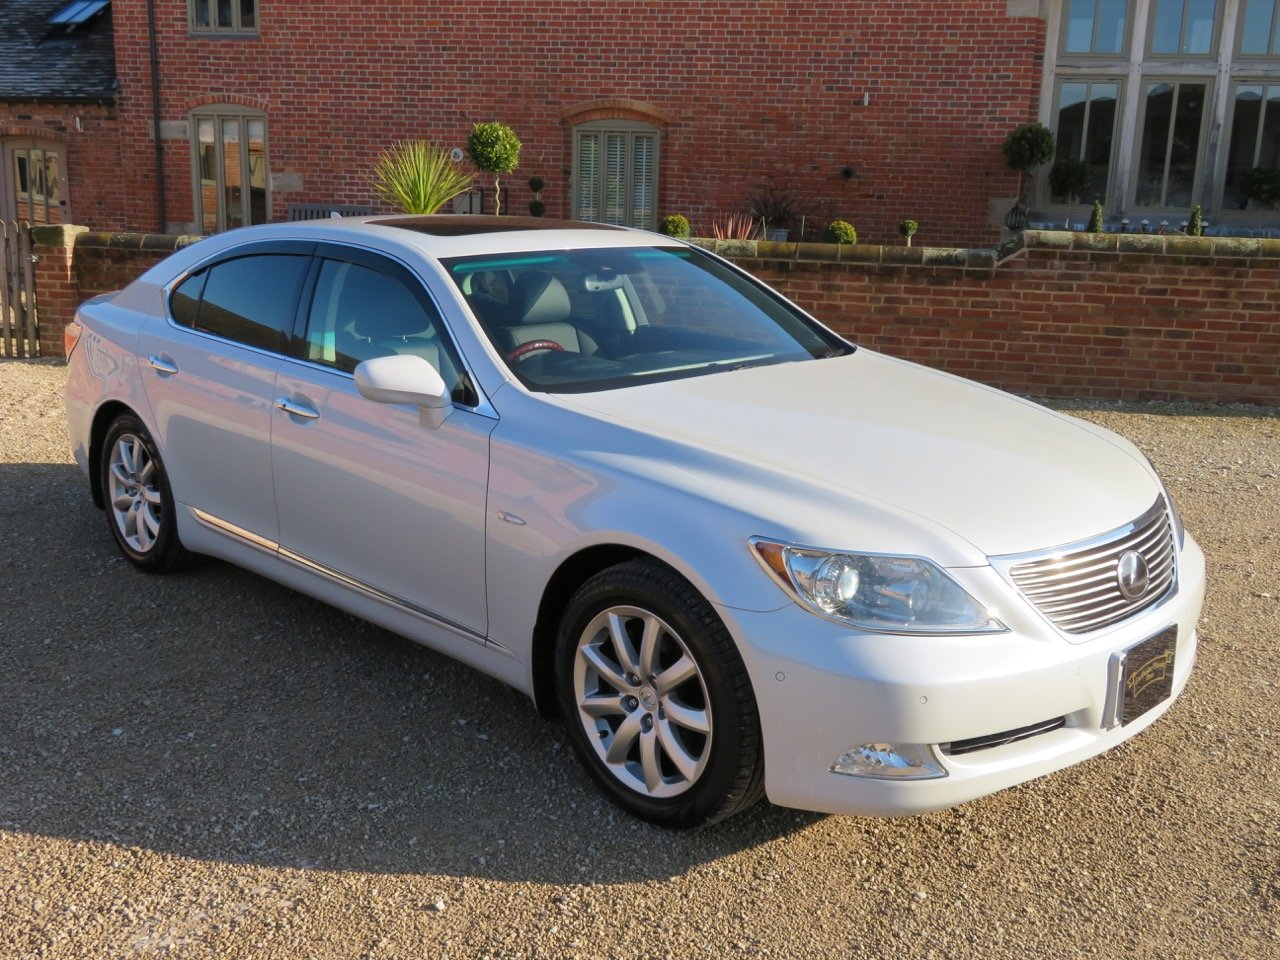 LEXUS LS 460L 2006 7K MILES FROM NEW 1 OWNER FROM NEW For Sale (picture 1 of 6)